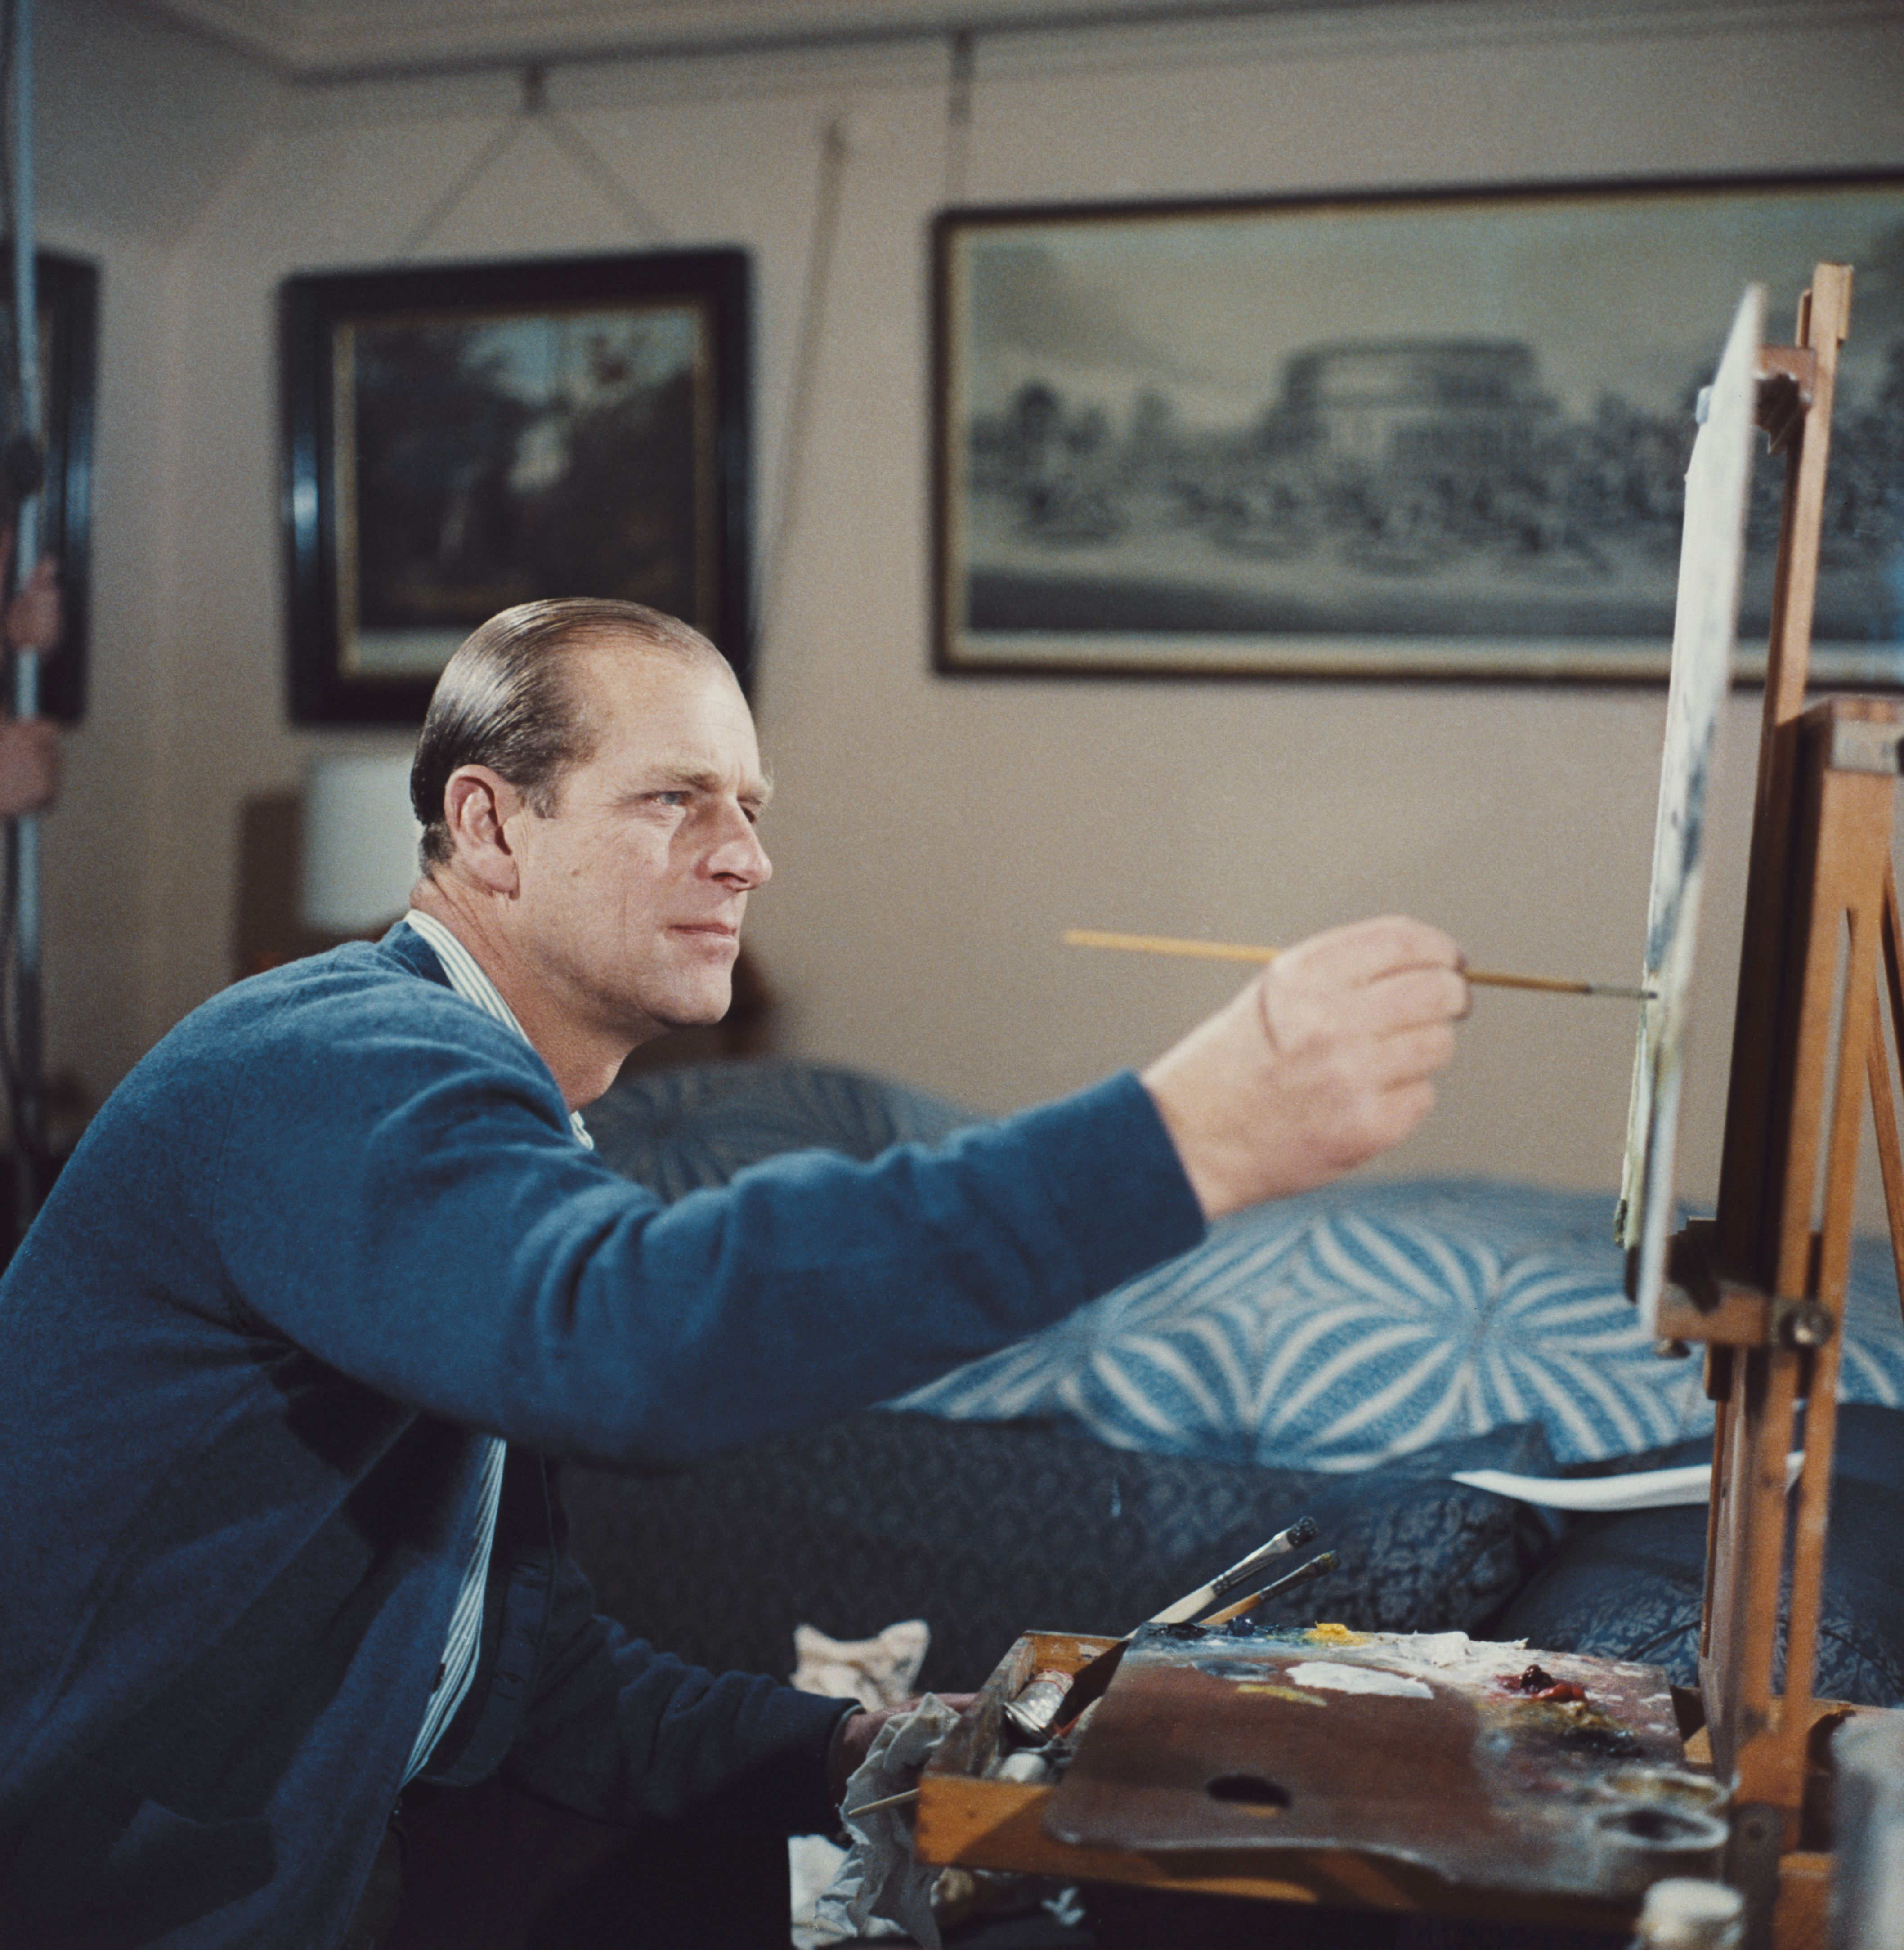 Prince Philip painting with oils during filming of the television documentary 'Royal Family' in London in 1969 | Source: Getty Images